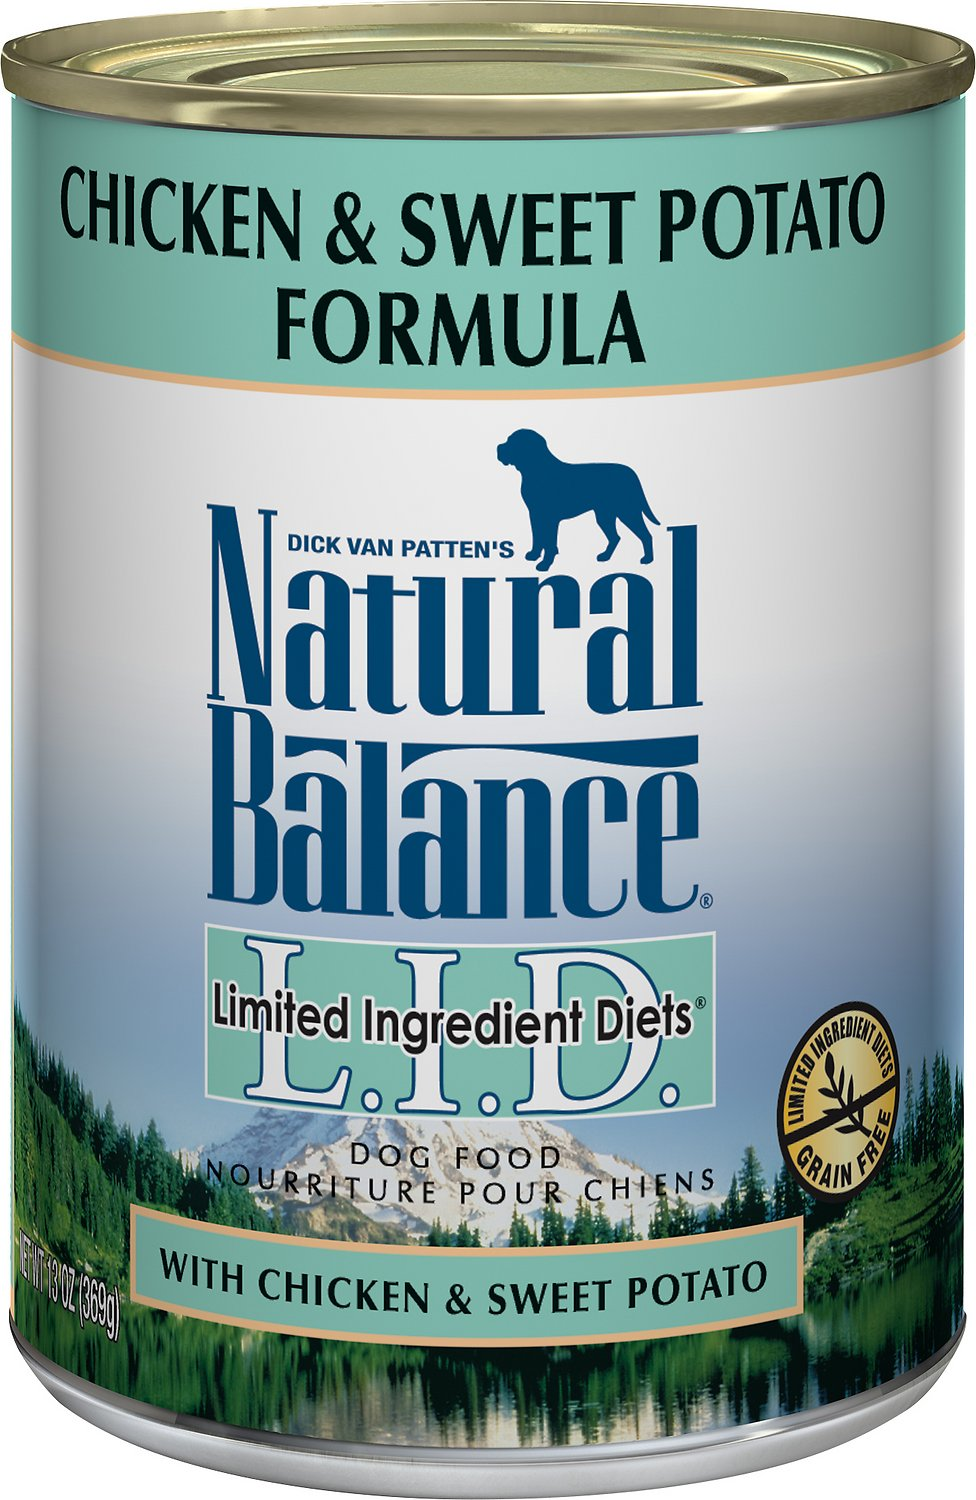 Natural Balance L.I.D. Limited Ingredient Diets Chicken & Sweet Potato Formula Grain-Free Canned Dog Food, 13-oz